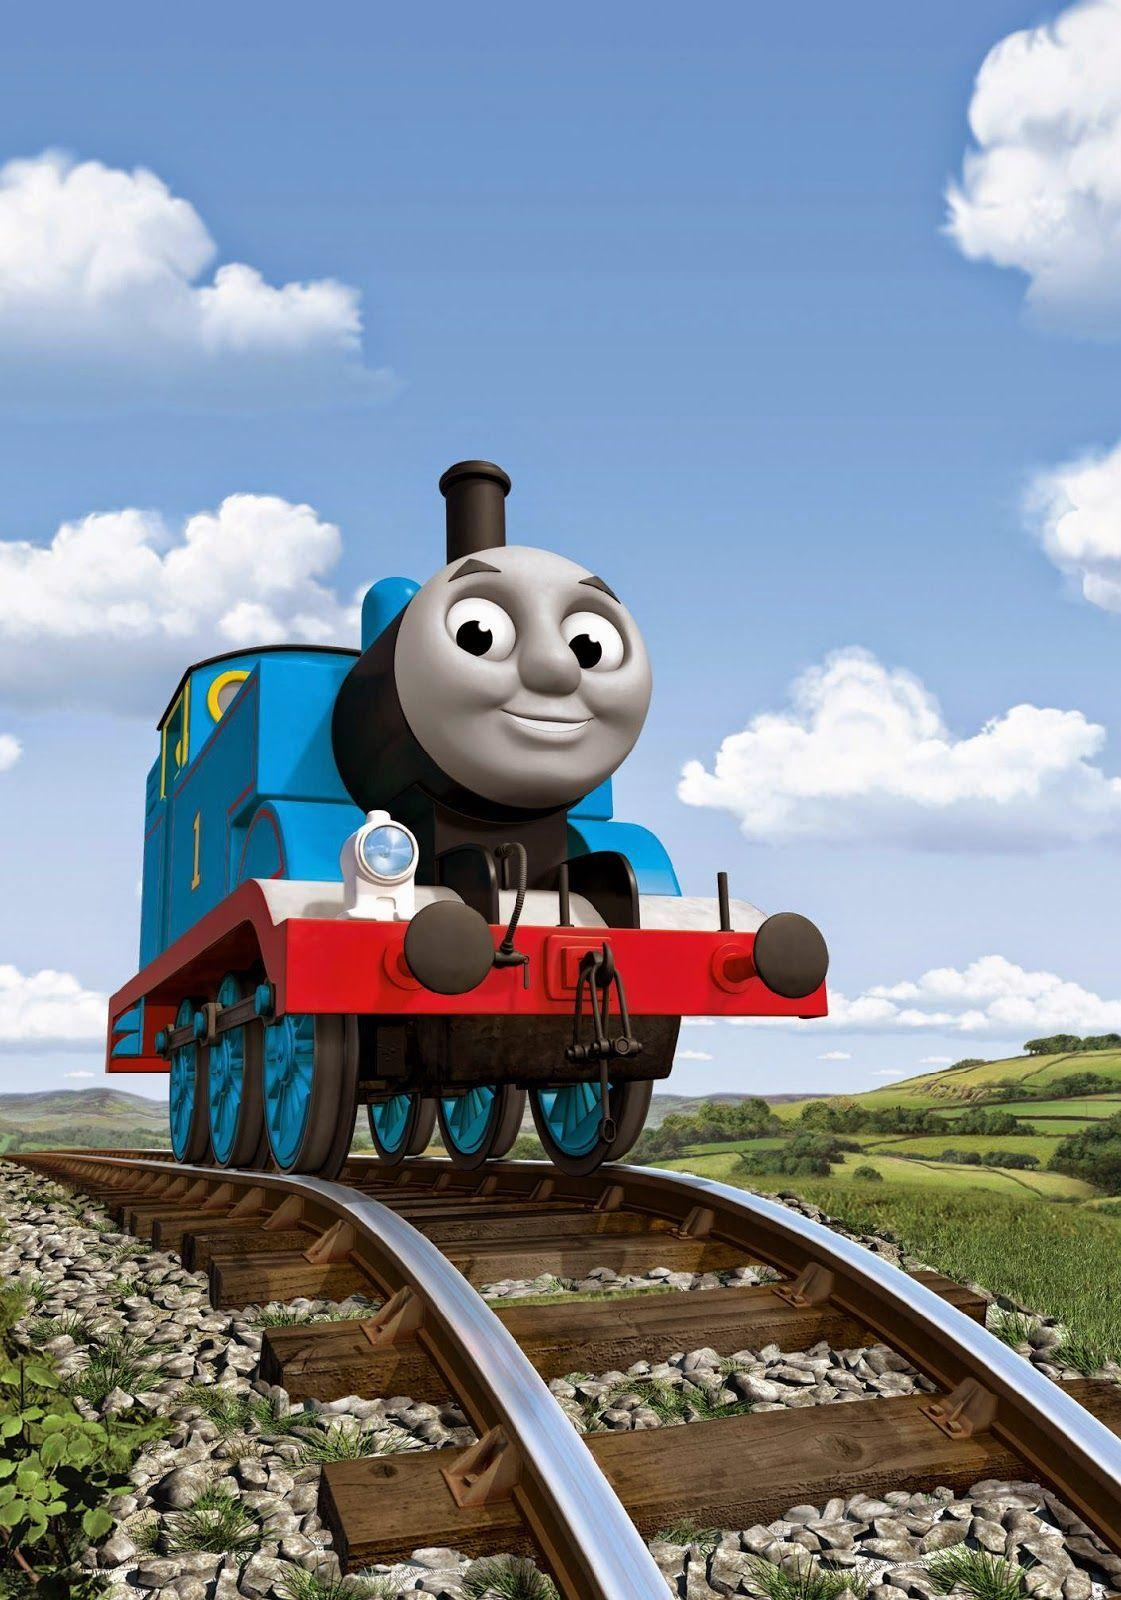 Thomas The Train Wallpapers - Wallpaper Cave